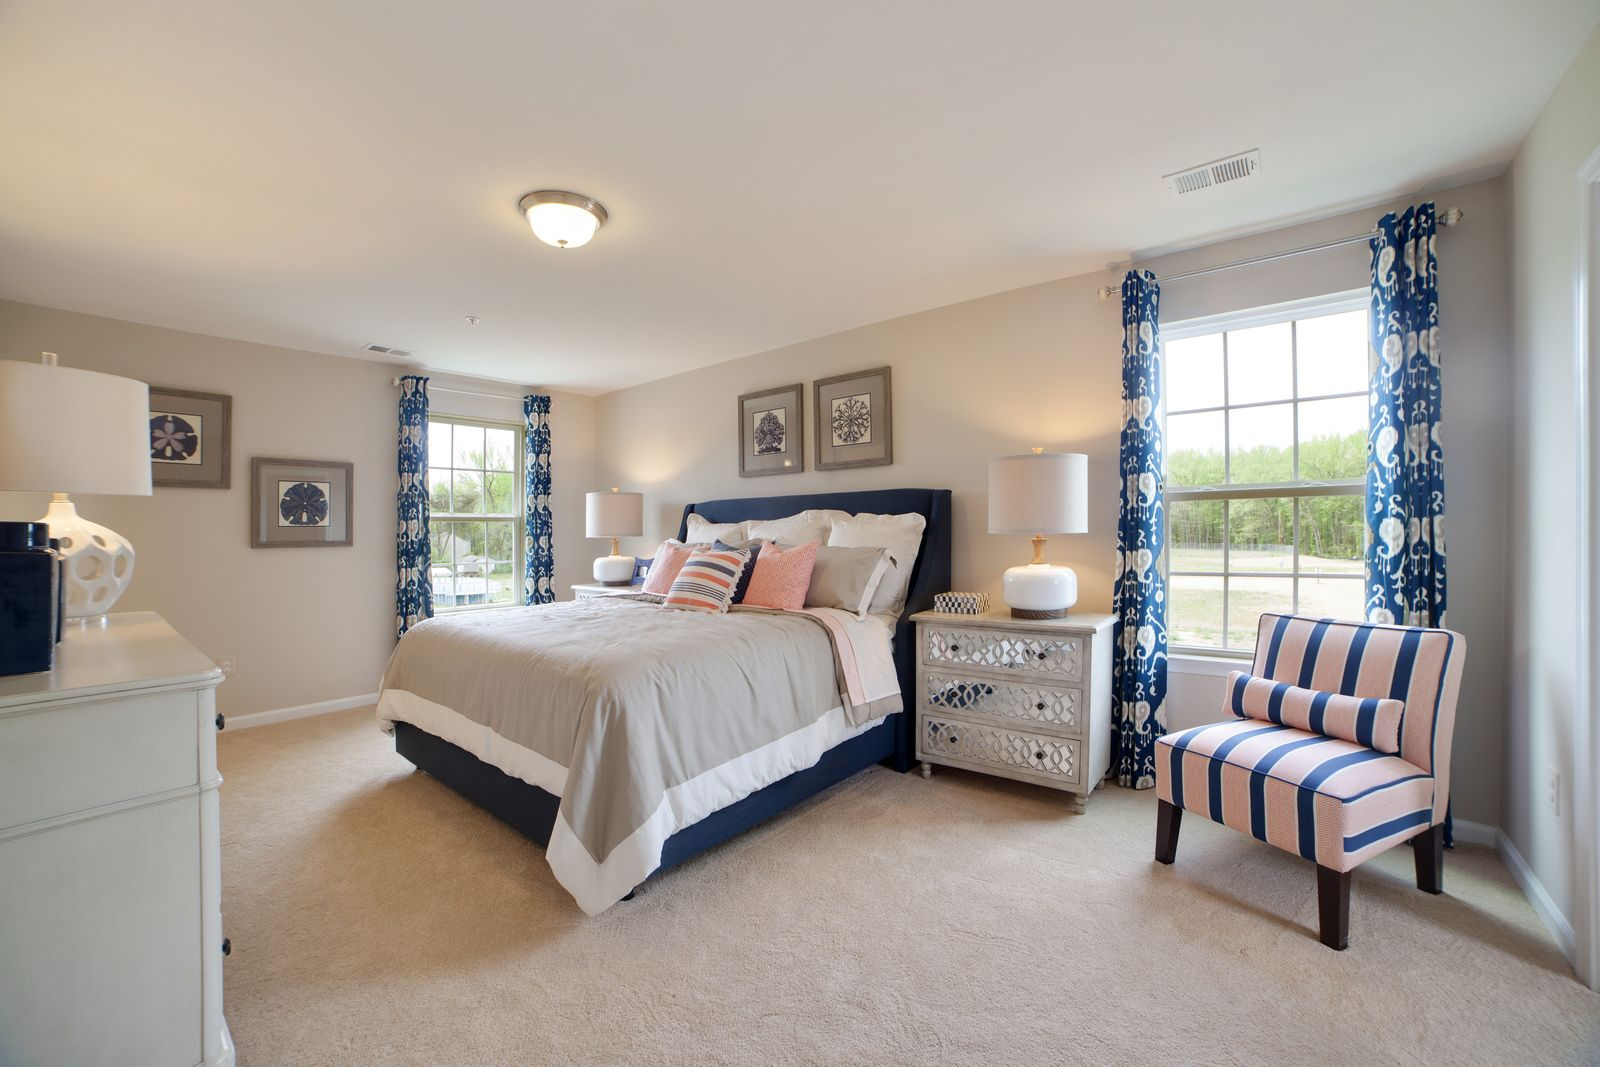 Bedroom featured in the Sienna By Ryan Homes in Rochester, NY